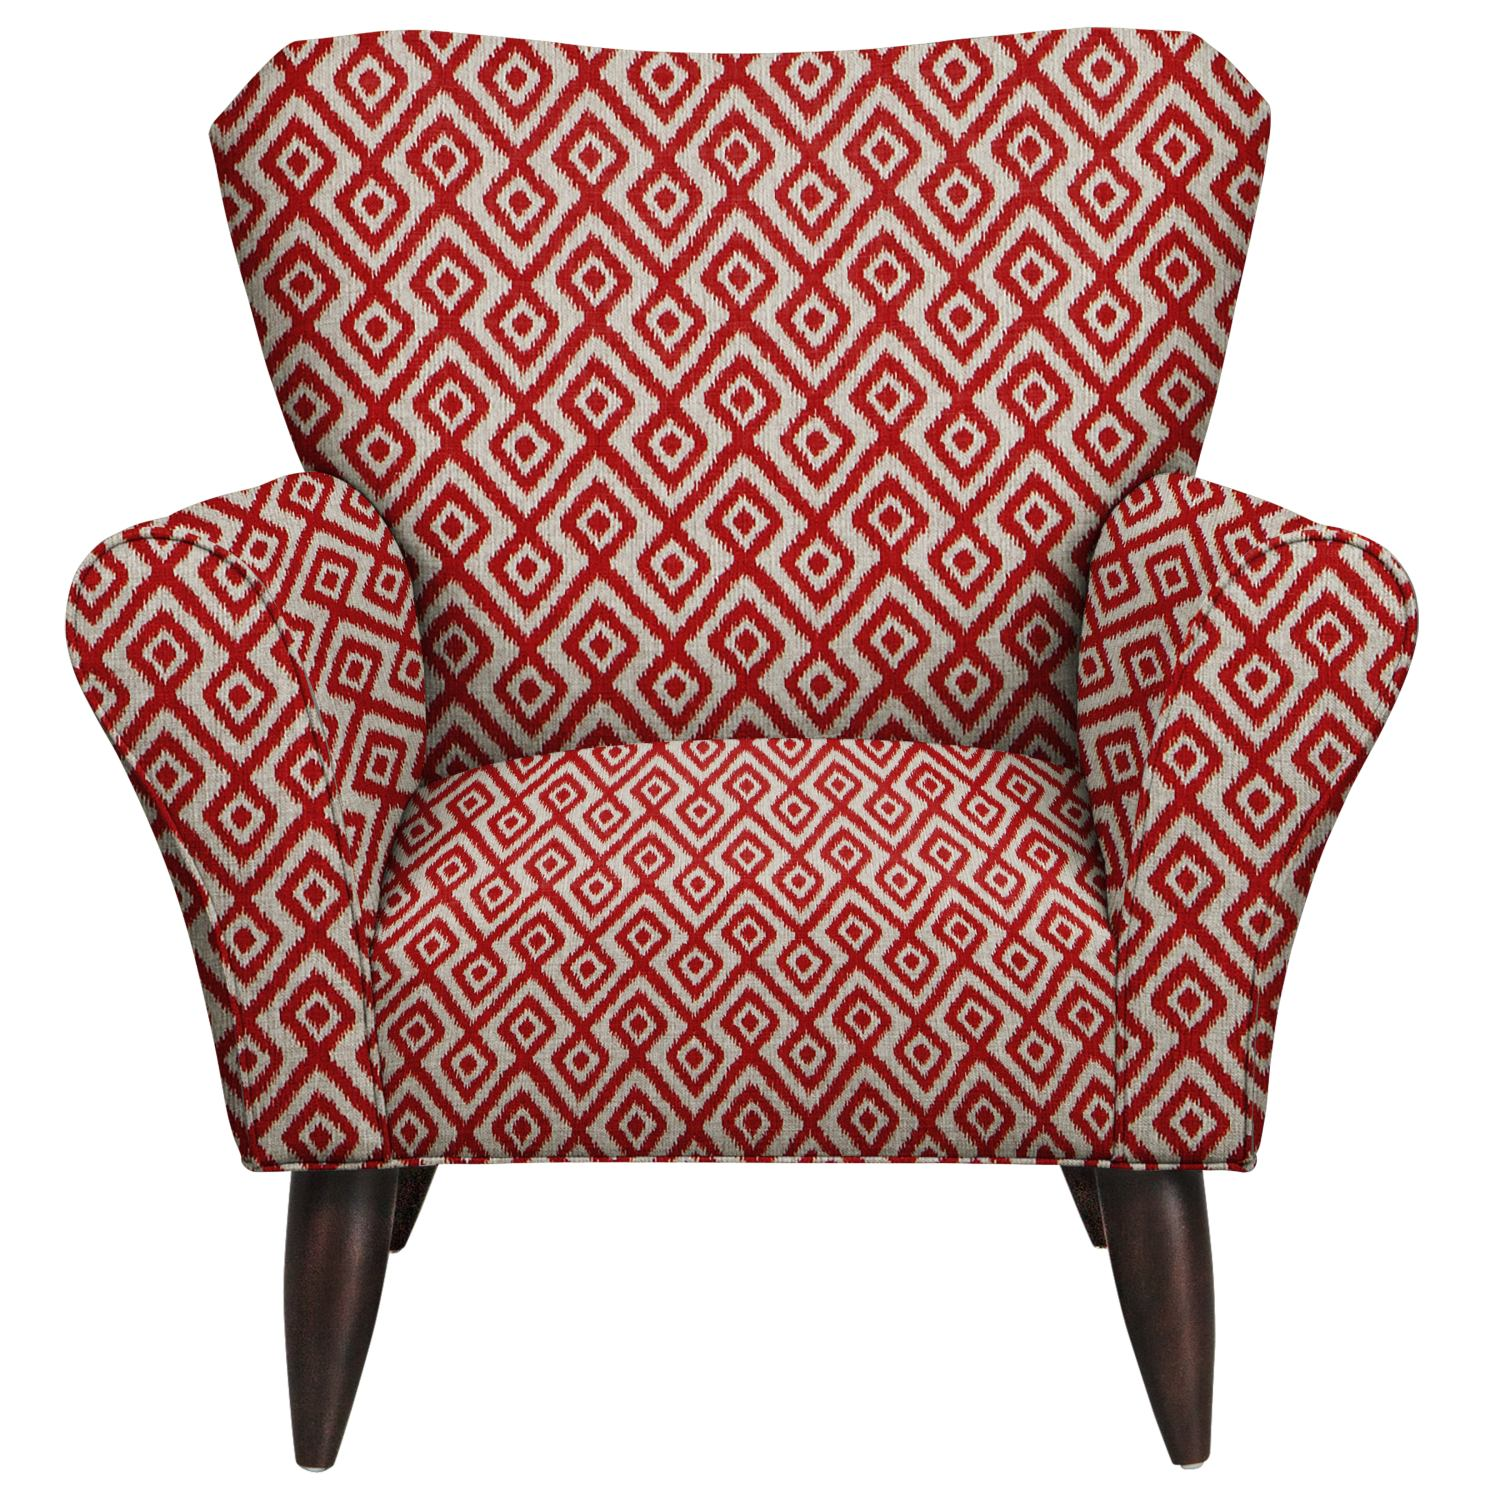 Living Room Furniture - Jessie Chair w/ Tate Red Fabric